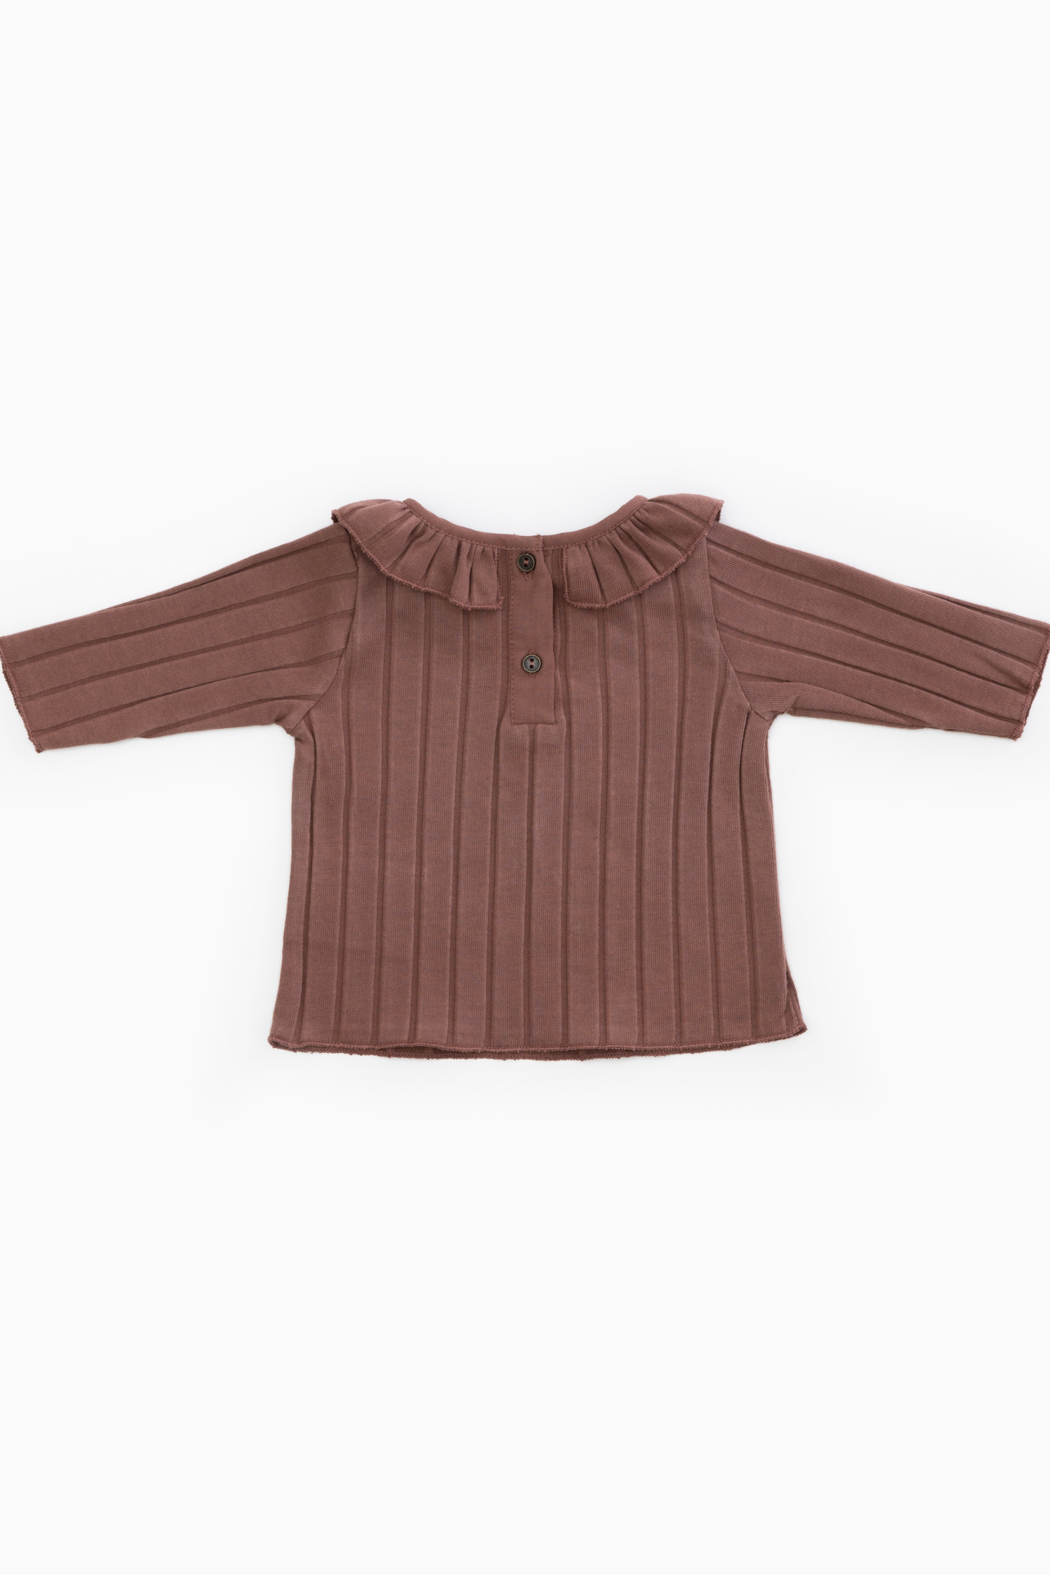 Play Up Organic Cotton Rib T-Shirt with Frill for Baby Girls - Front Full Image